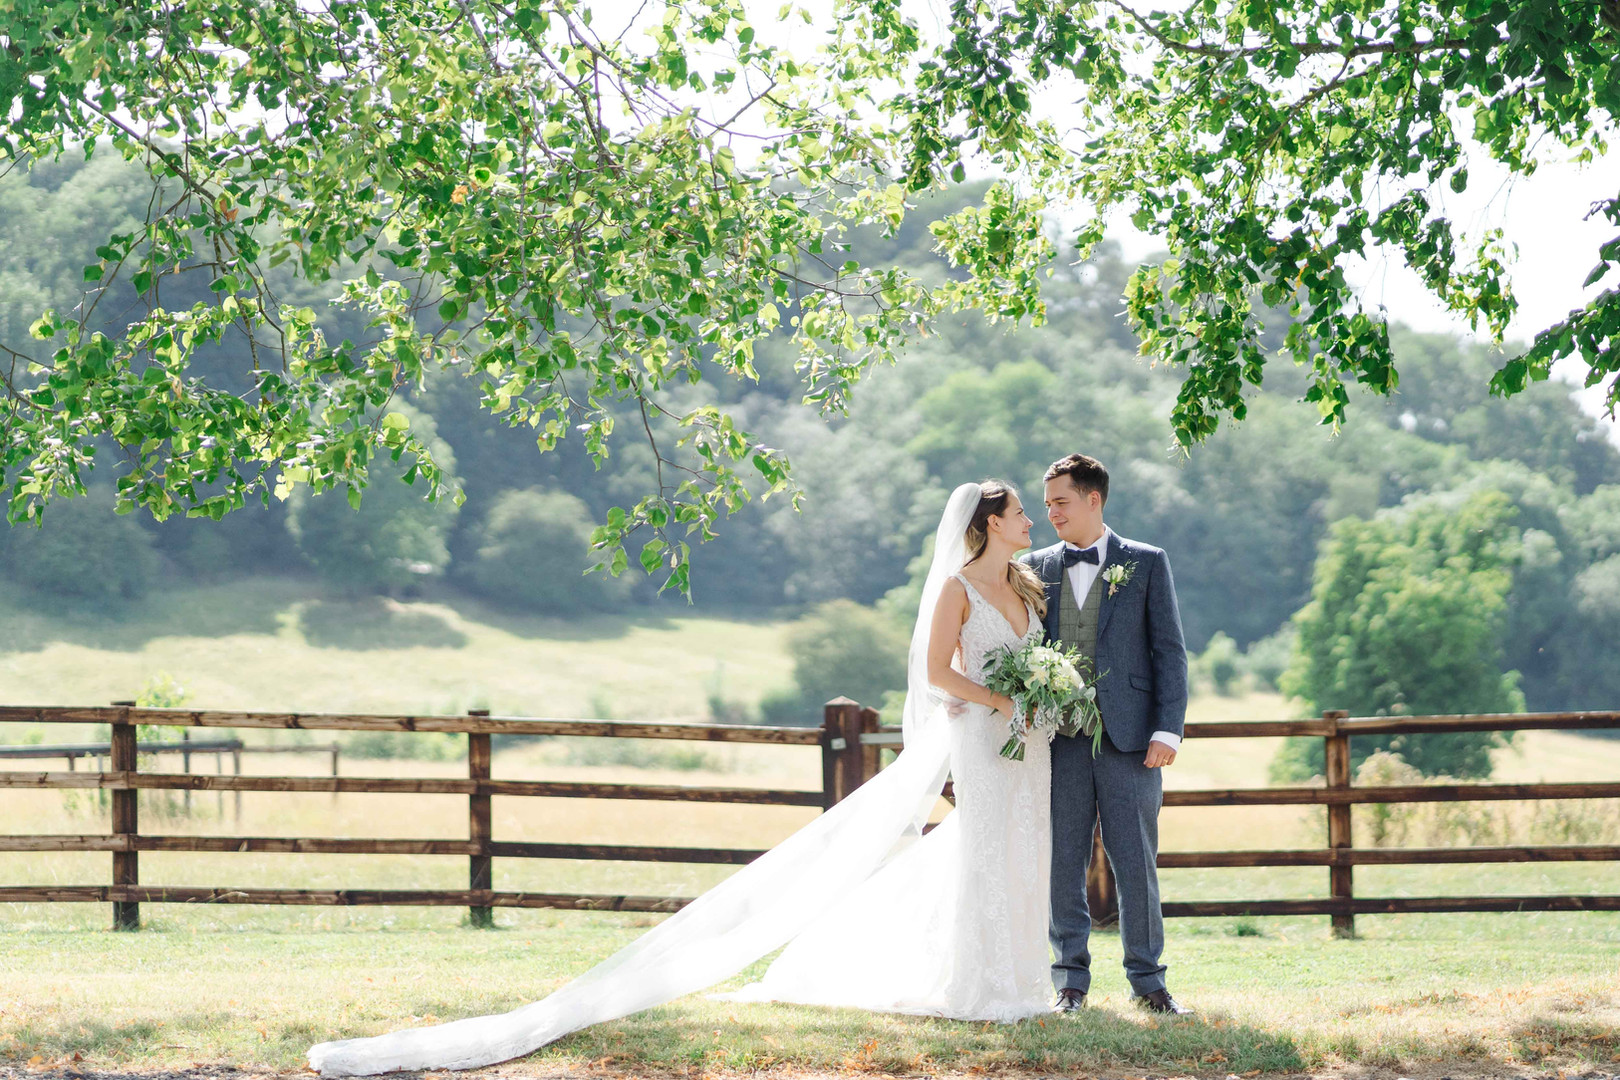 Bride and Groom by Chloe Ely Photography Wedding Photographer